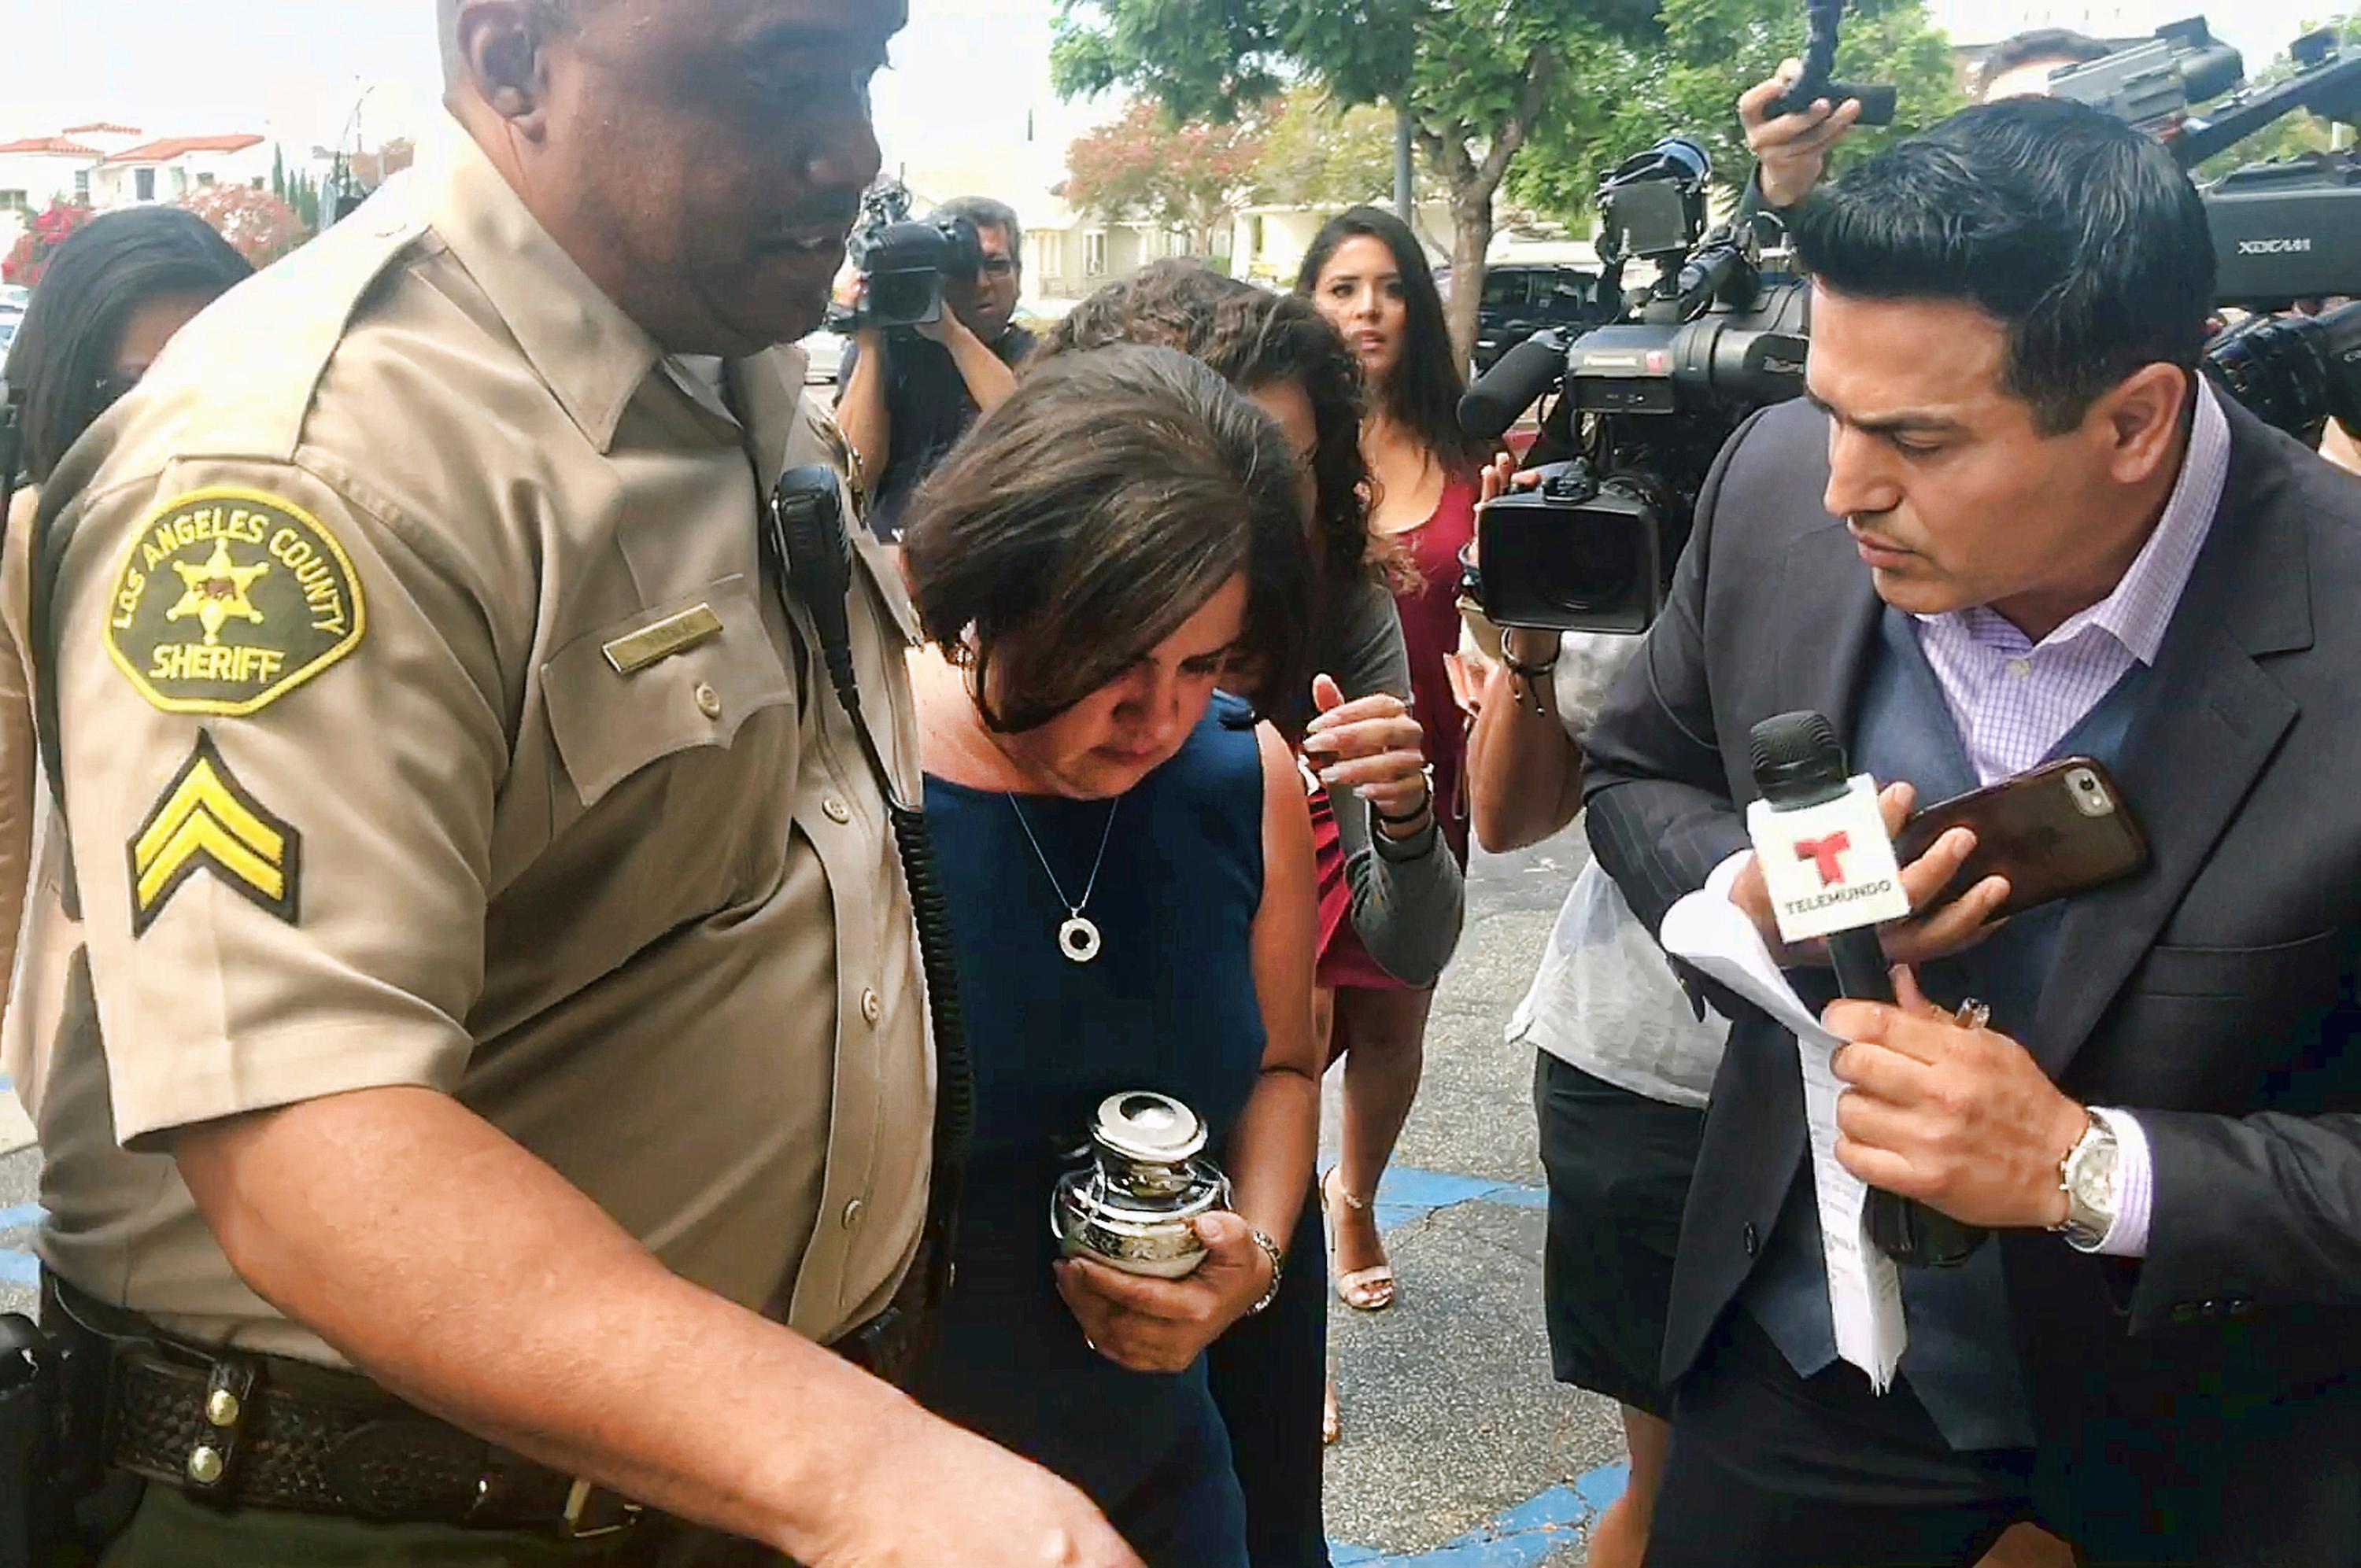 In this image taken from video, Ana Estevez, the mother of 5-year-old Aramazd Andressian Jr., carries an urn with her son's remains as she leaves a court hearing in Alhambra, Calif., Tuesday, Aug. 1, 2017. The boy's father Aramazd Andressian Sr. pleaded guilty in the killing. (AP Photo/Mike Balsamo)